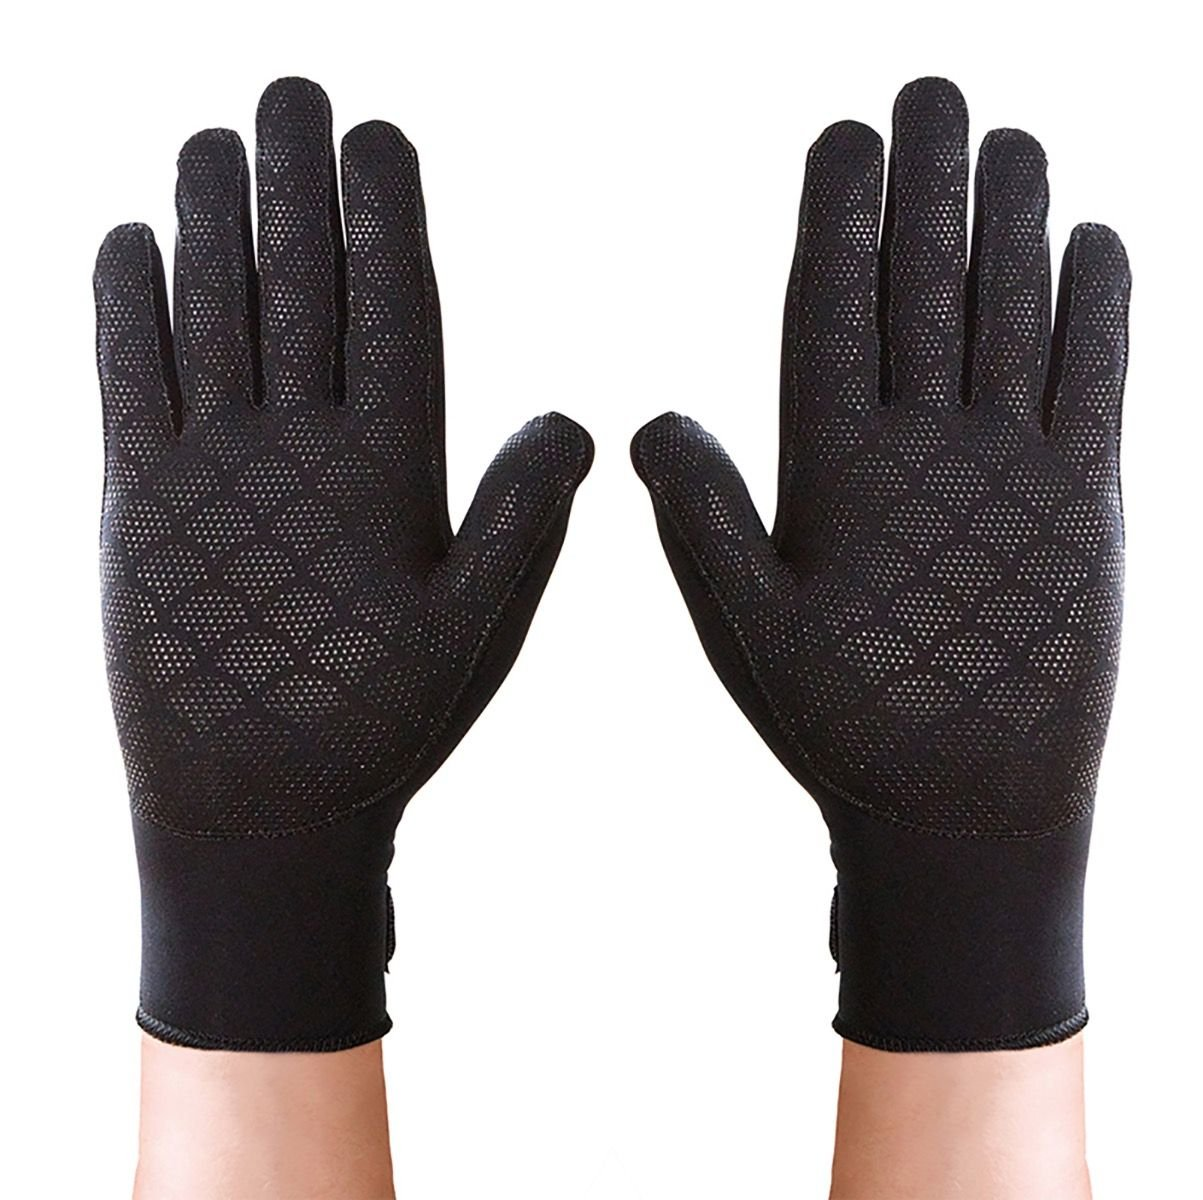 THERMOSKIN Gloves, Pair, MED.